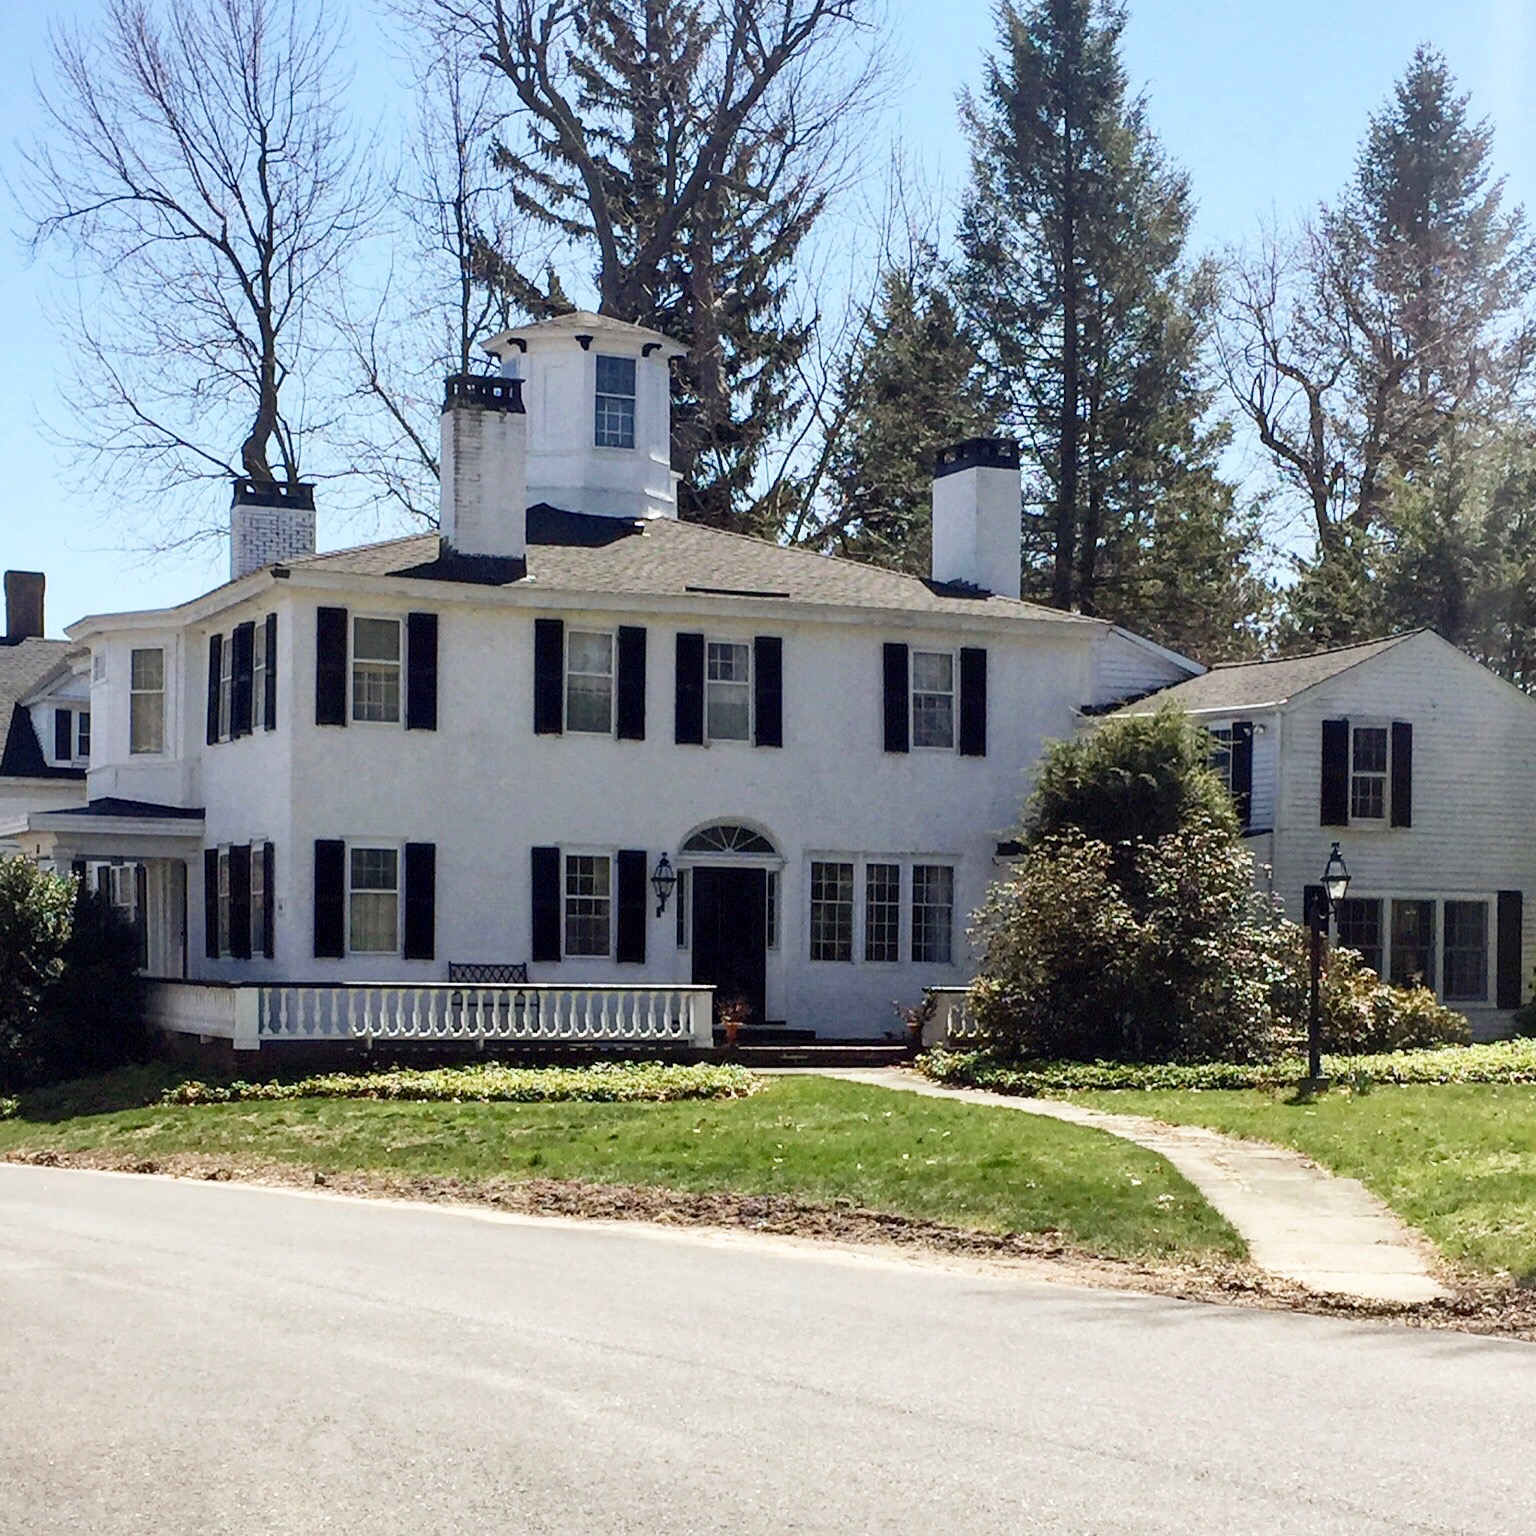 white home black trim white chimney painted black top harvard ma historic antique home New England USA.jpg